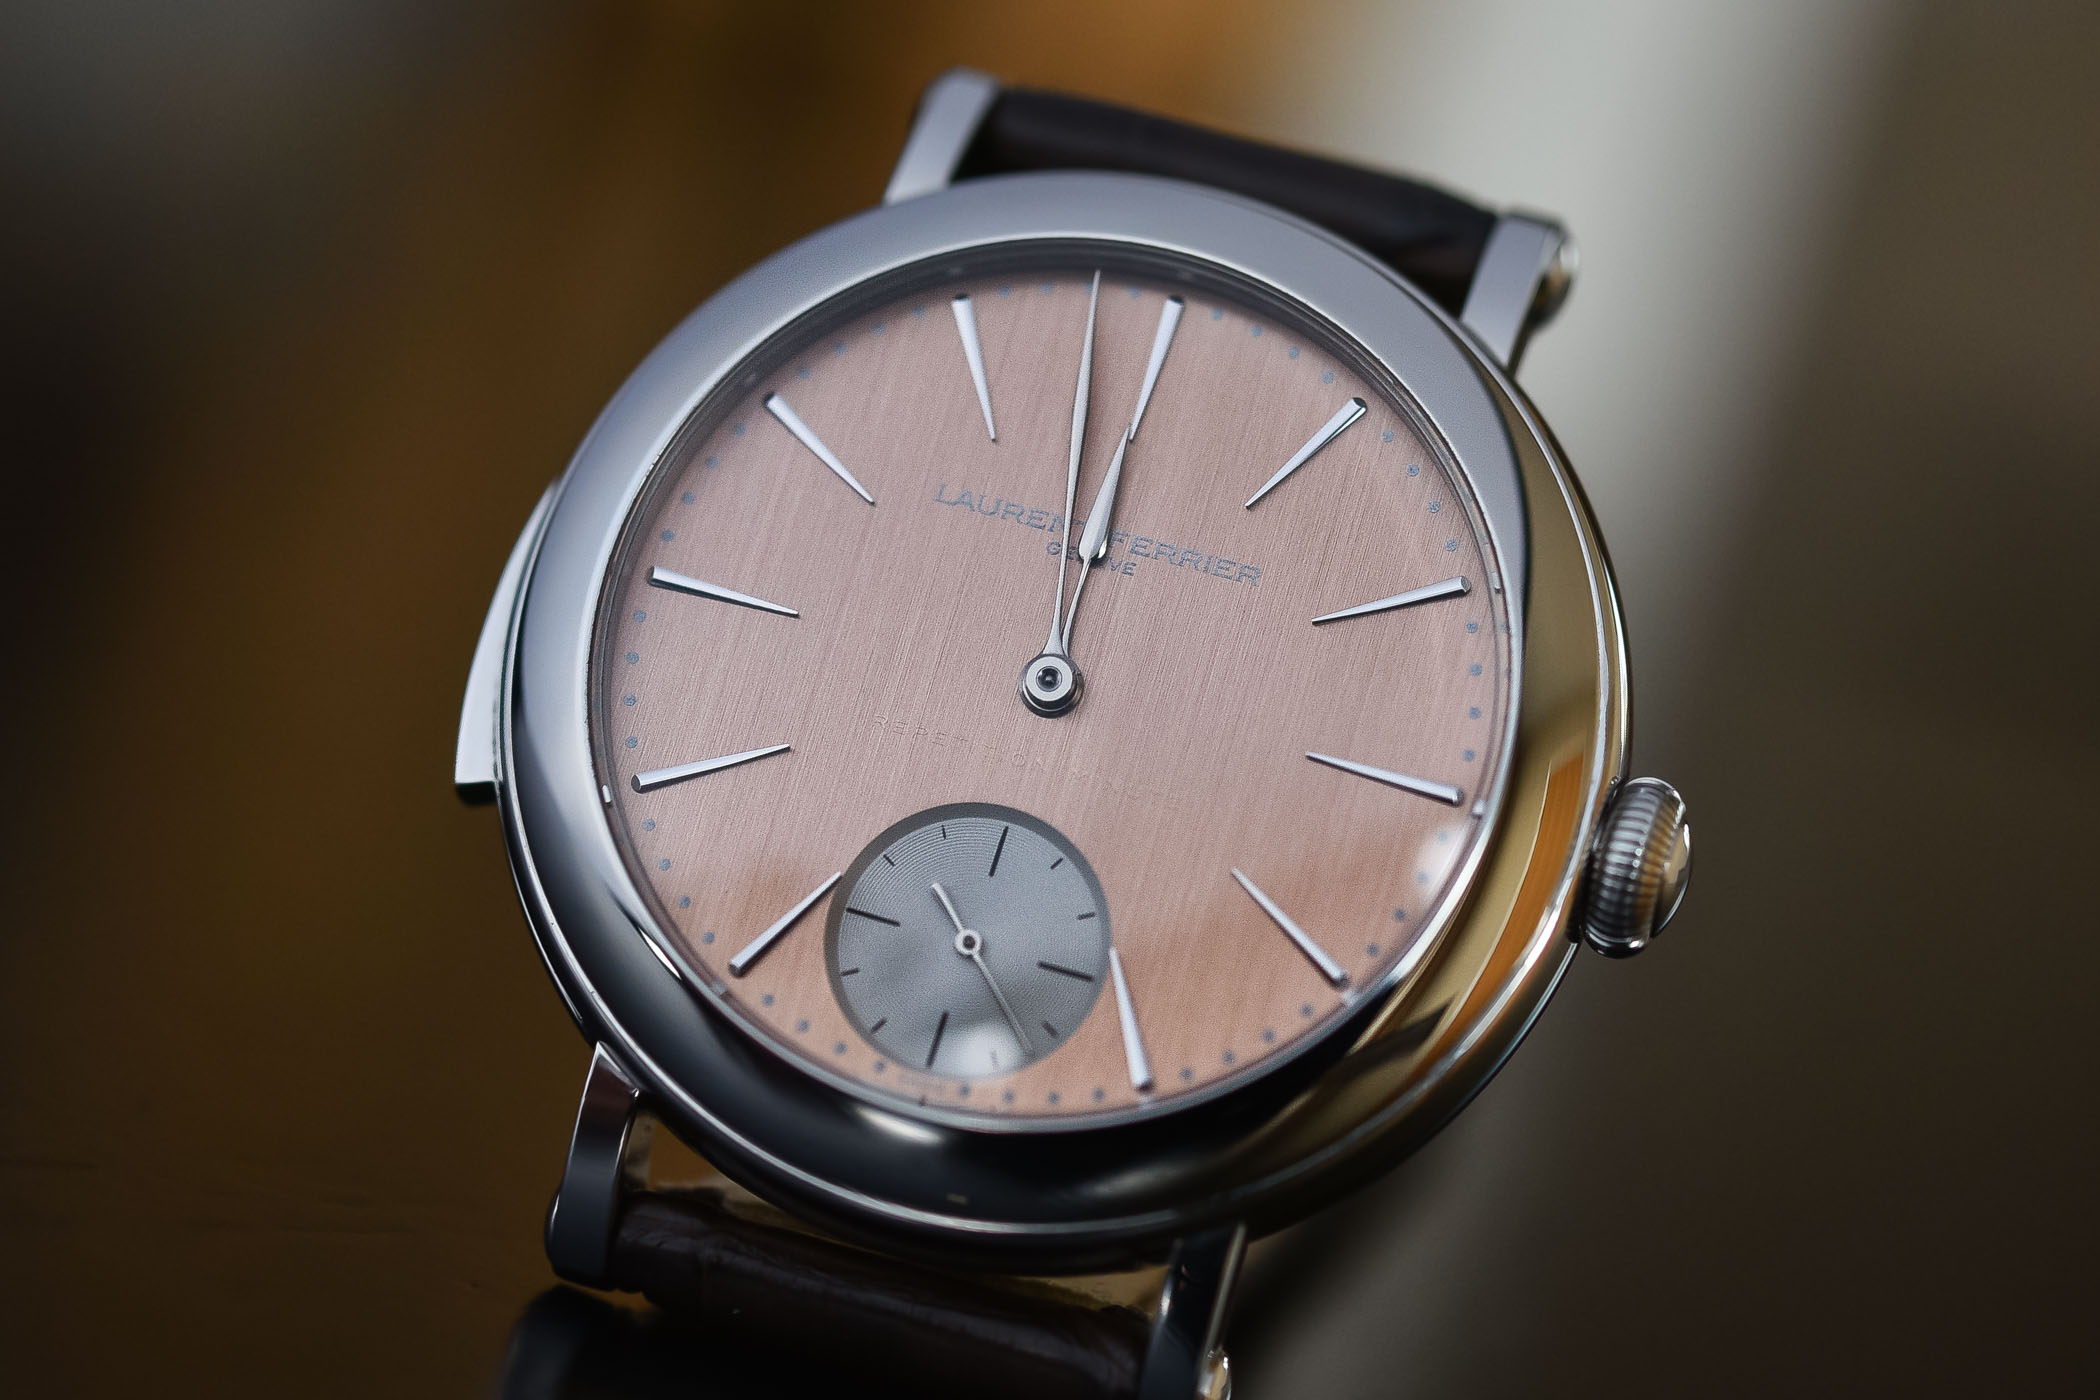 Laurent ferrier Galet Minute Repeater Montre Ecole